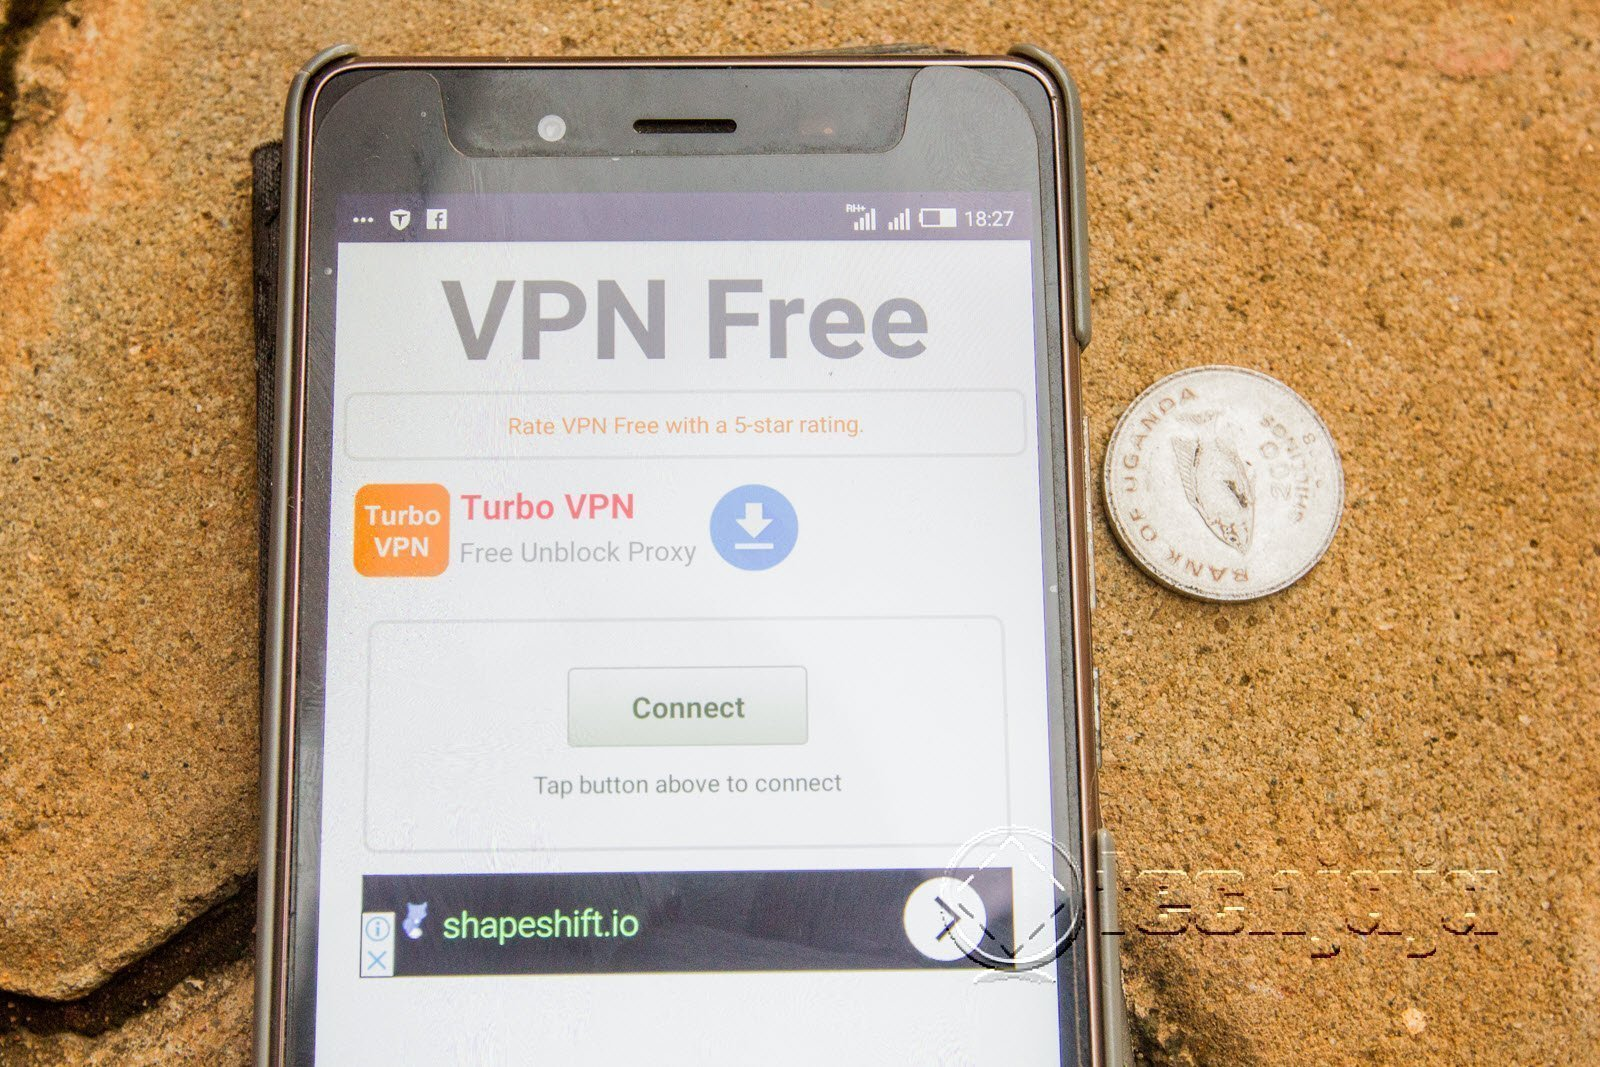 Why VPNs will continue to grow more popular than paying OTT tax in